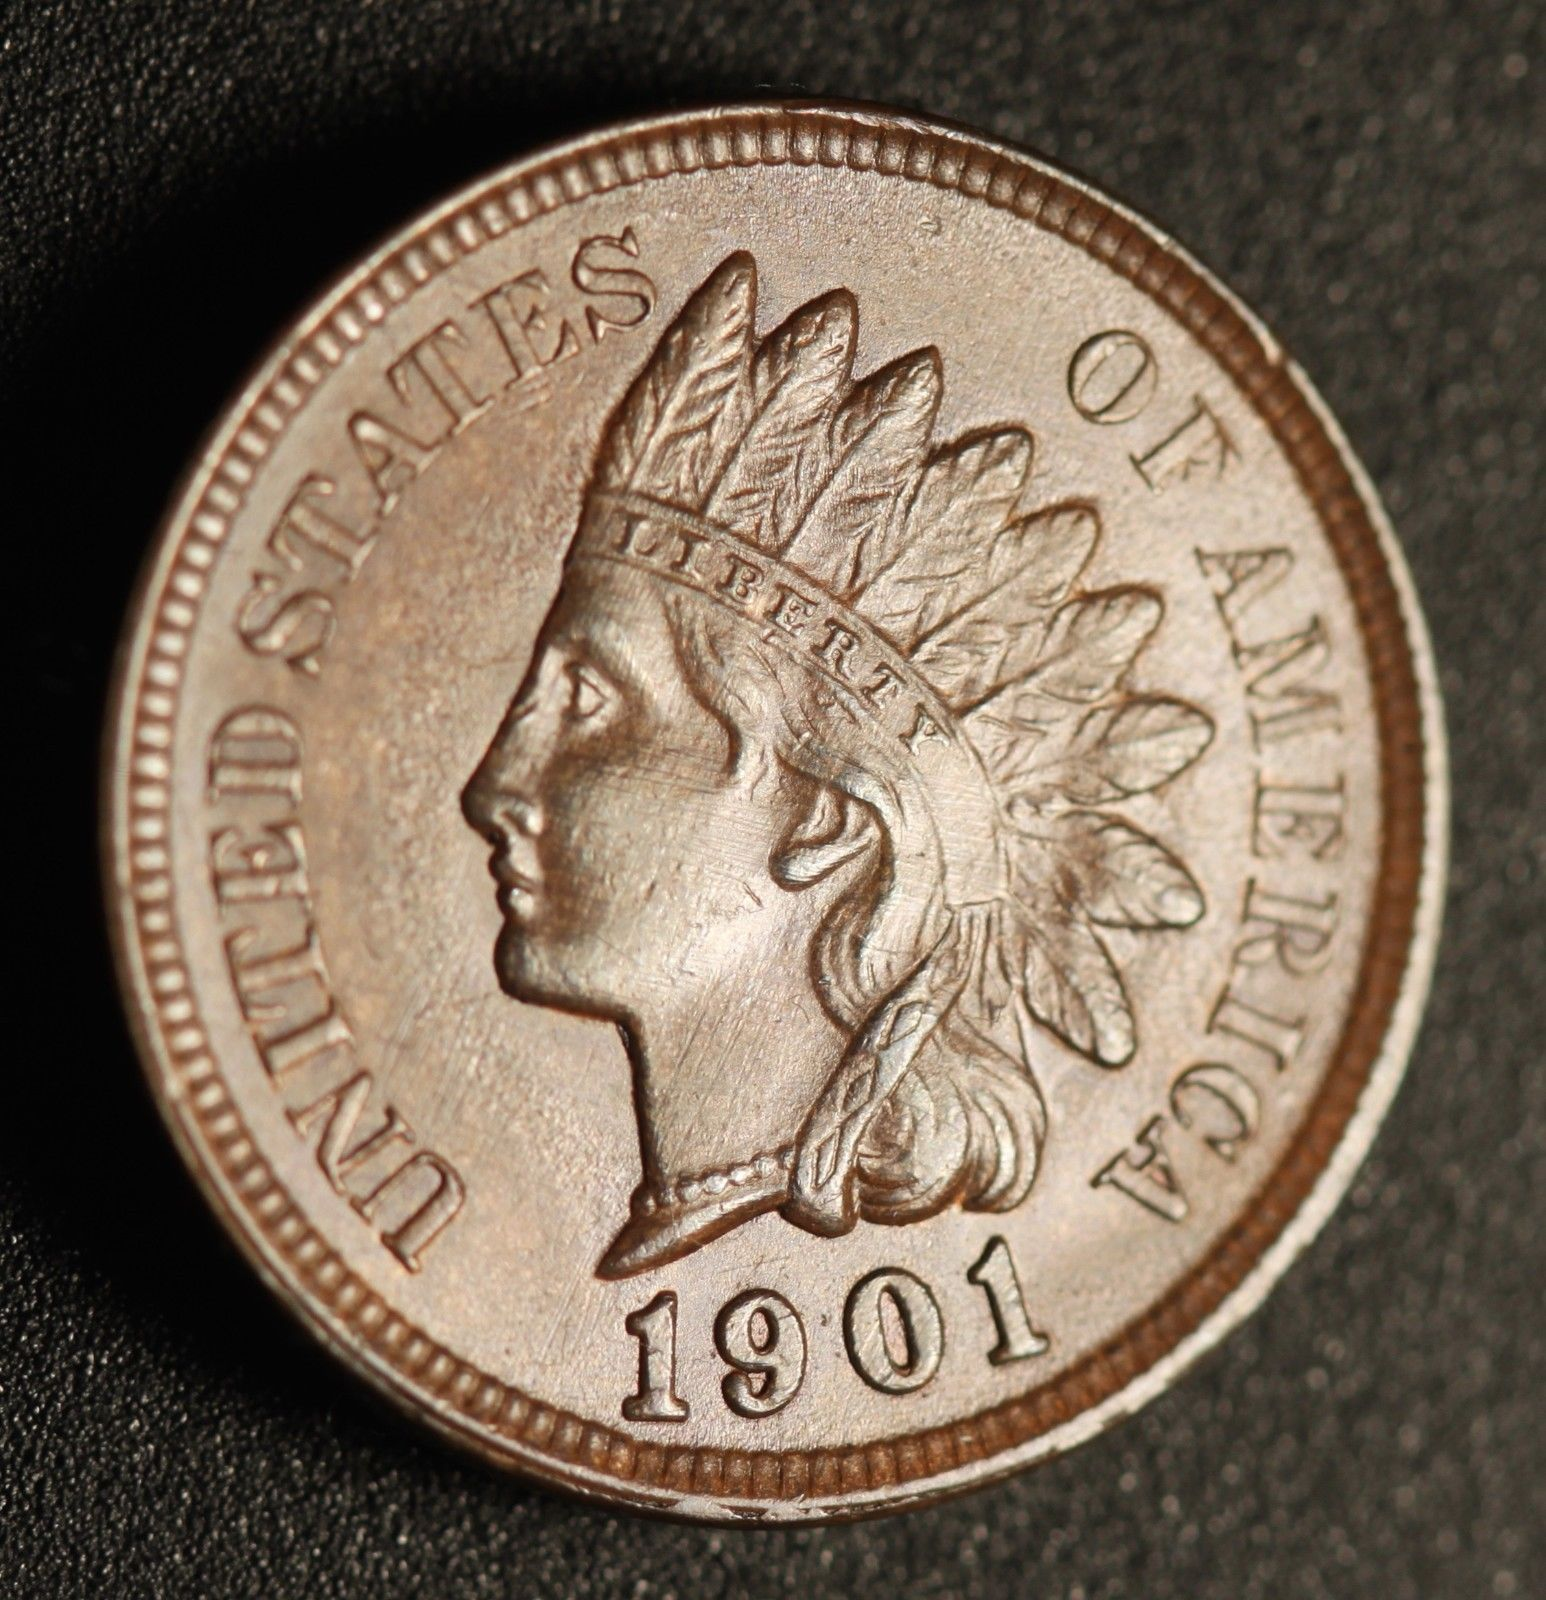 1901 RPD-023 - Indian Head Penny - Photo by Ed Nathanson